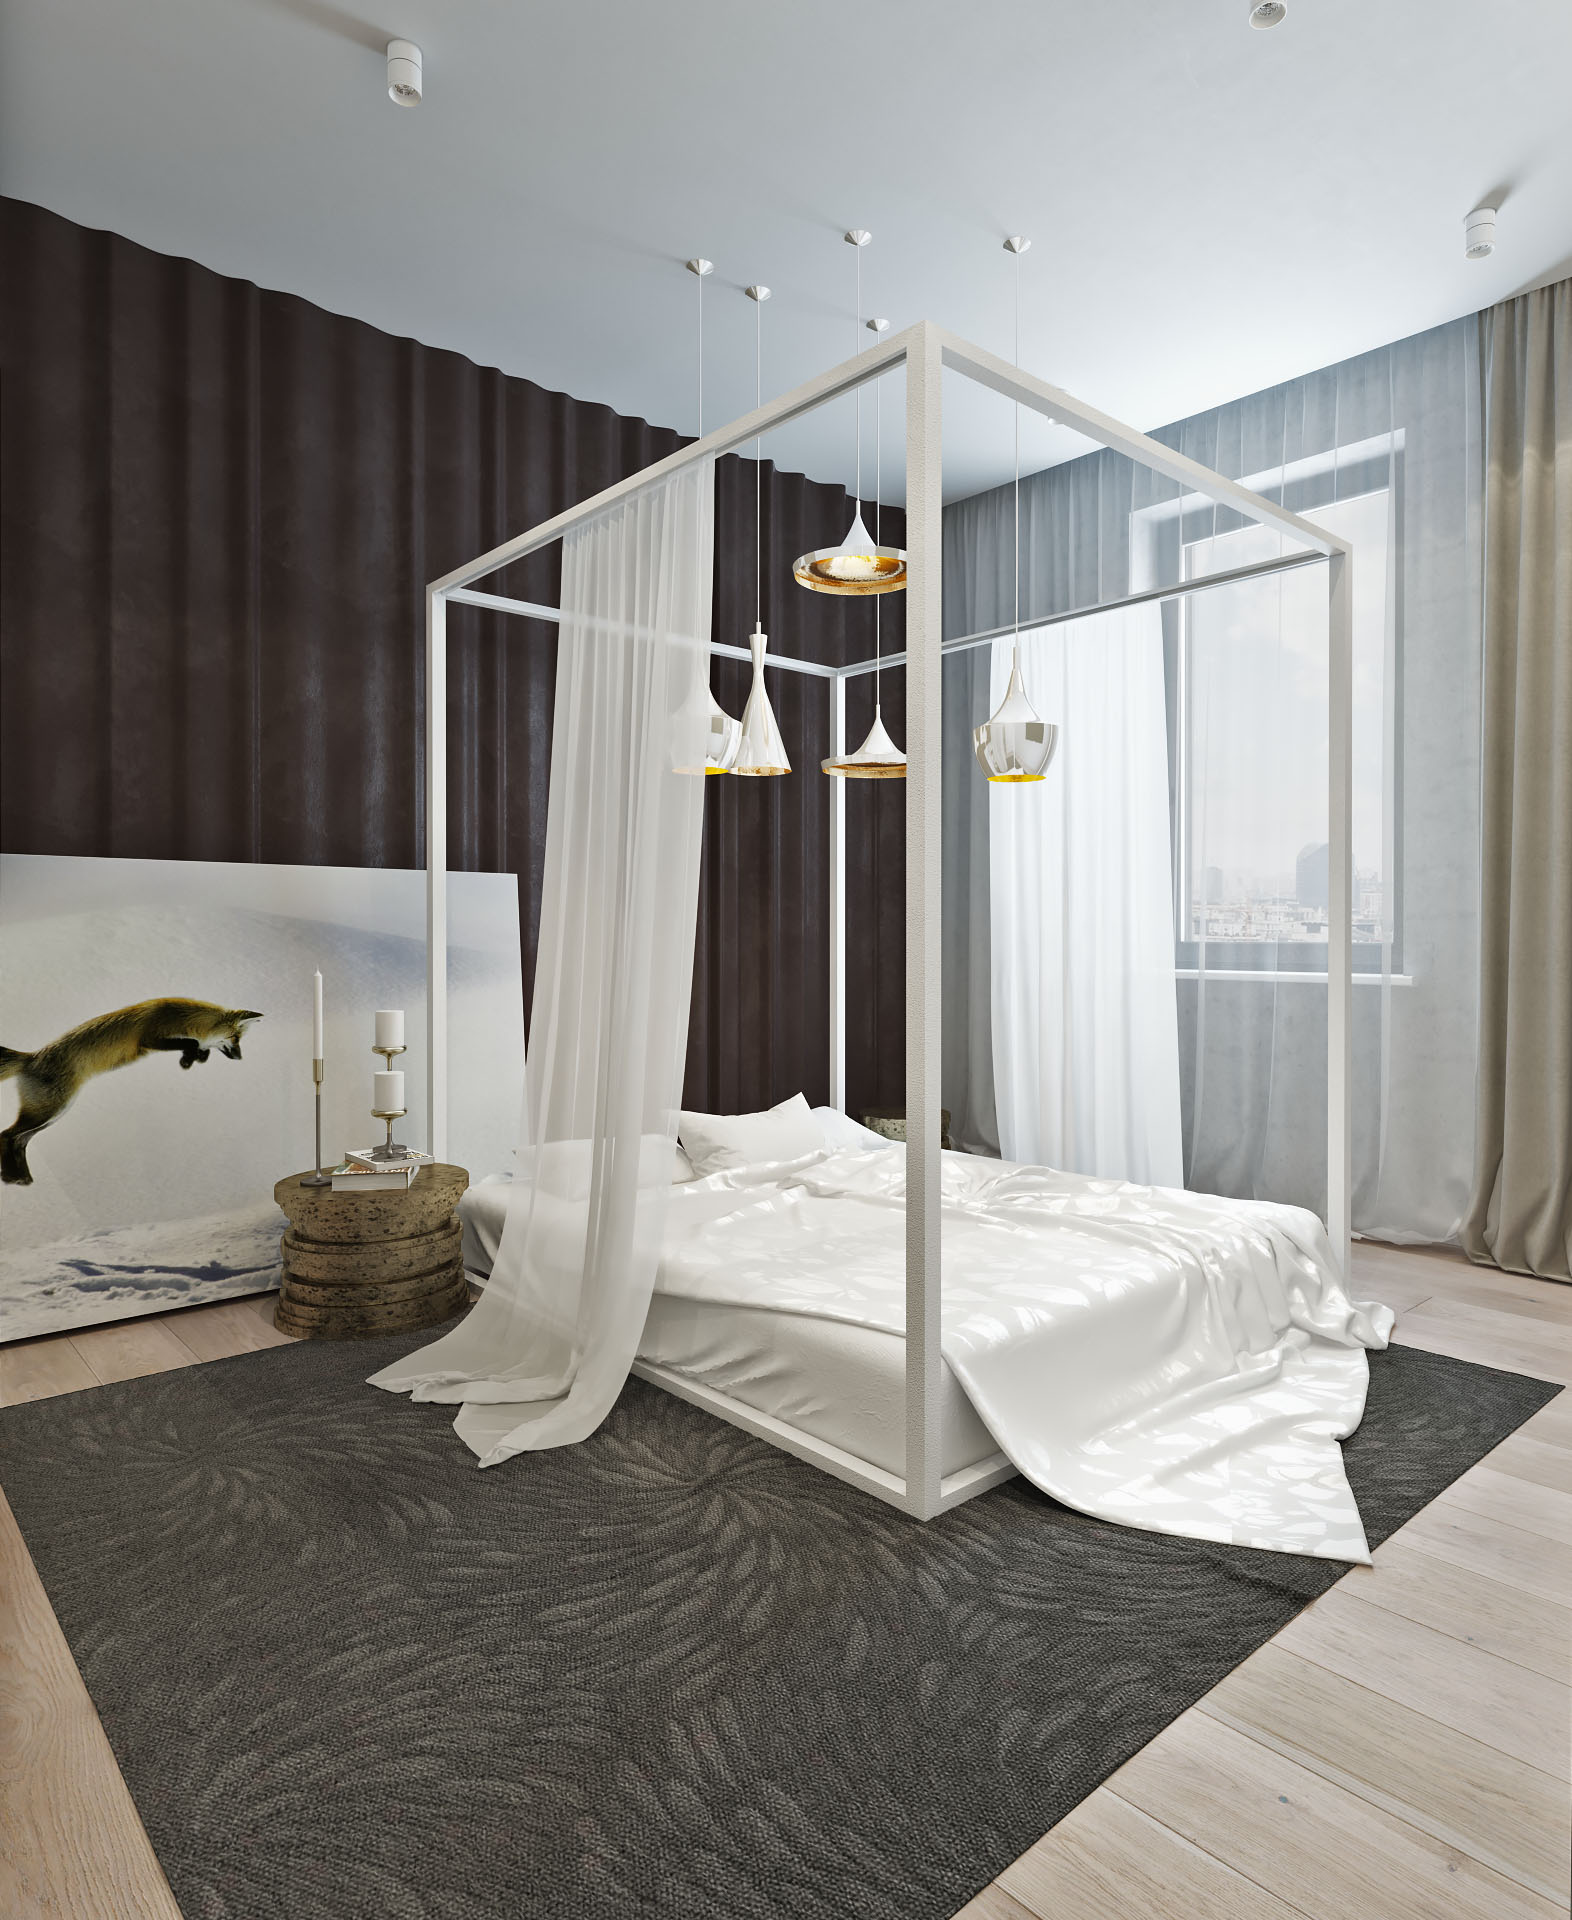 Modern canopy bed tumblr - Modern Canopy Bed Tumblr 0